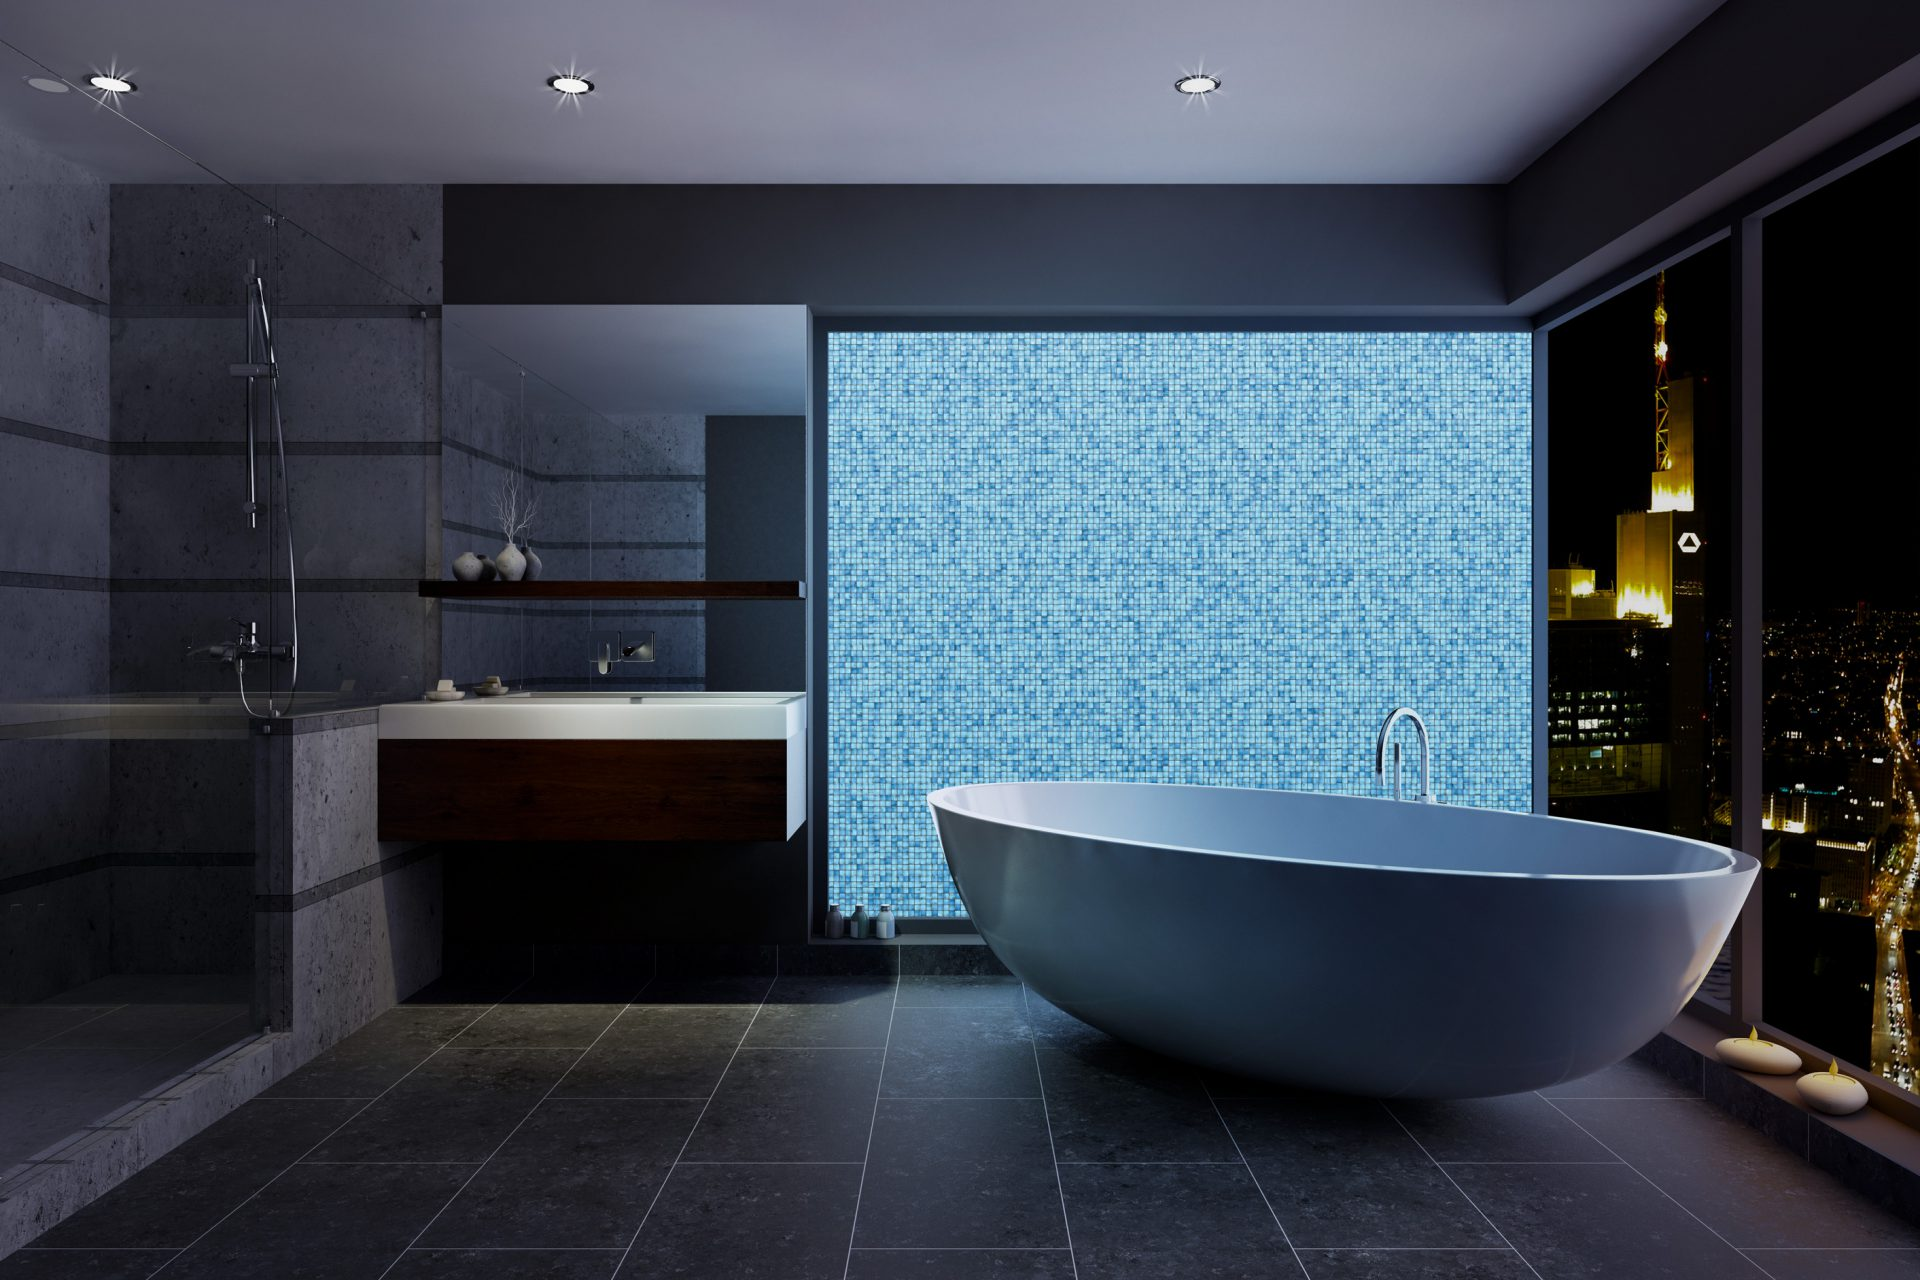 Image of a bathroom with bathtub and citysky view showing a pattern of blueish volatiles mosaics